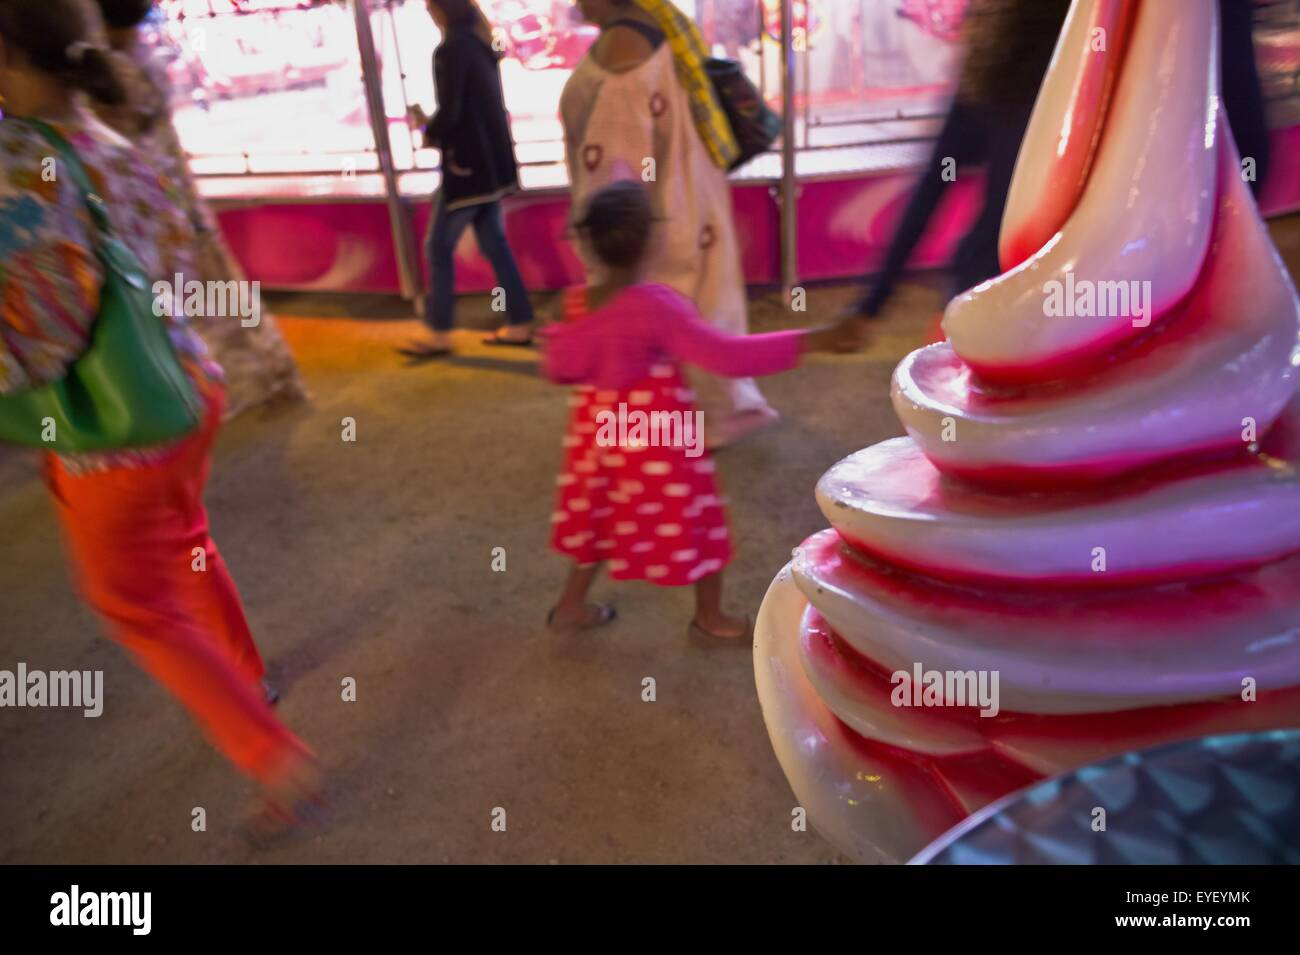 Scene of Saturday evening in the fun fair In a place steeped in history of France, every summer the Garden of the Tuileries welcomes about sixty fairground attractions for the enjoyment and the pleasure of the children and the parents. For several years t Stock Photo